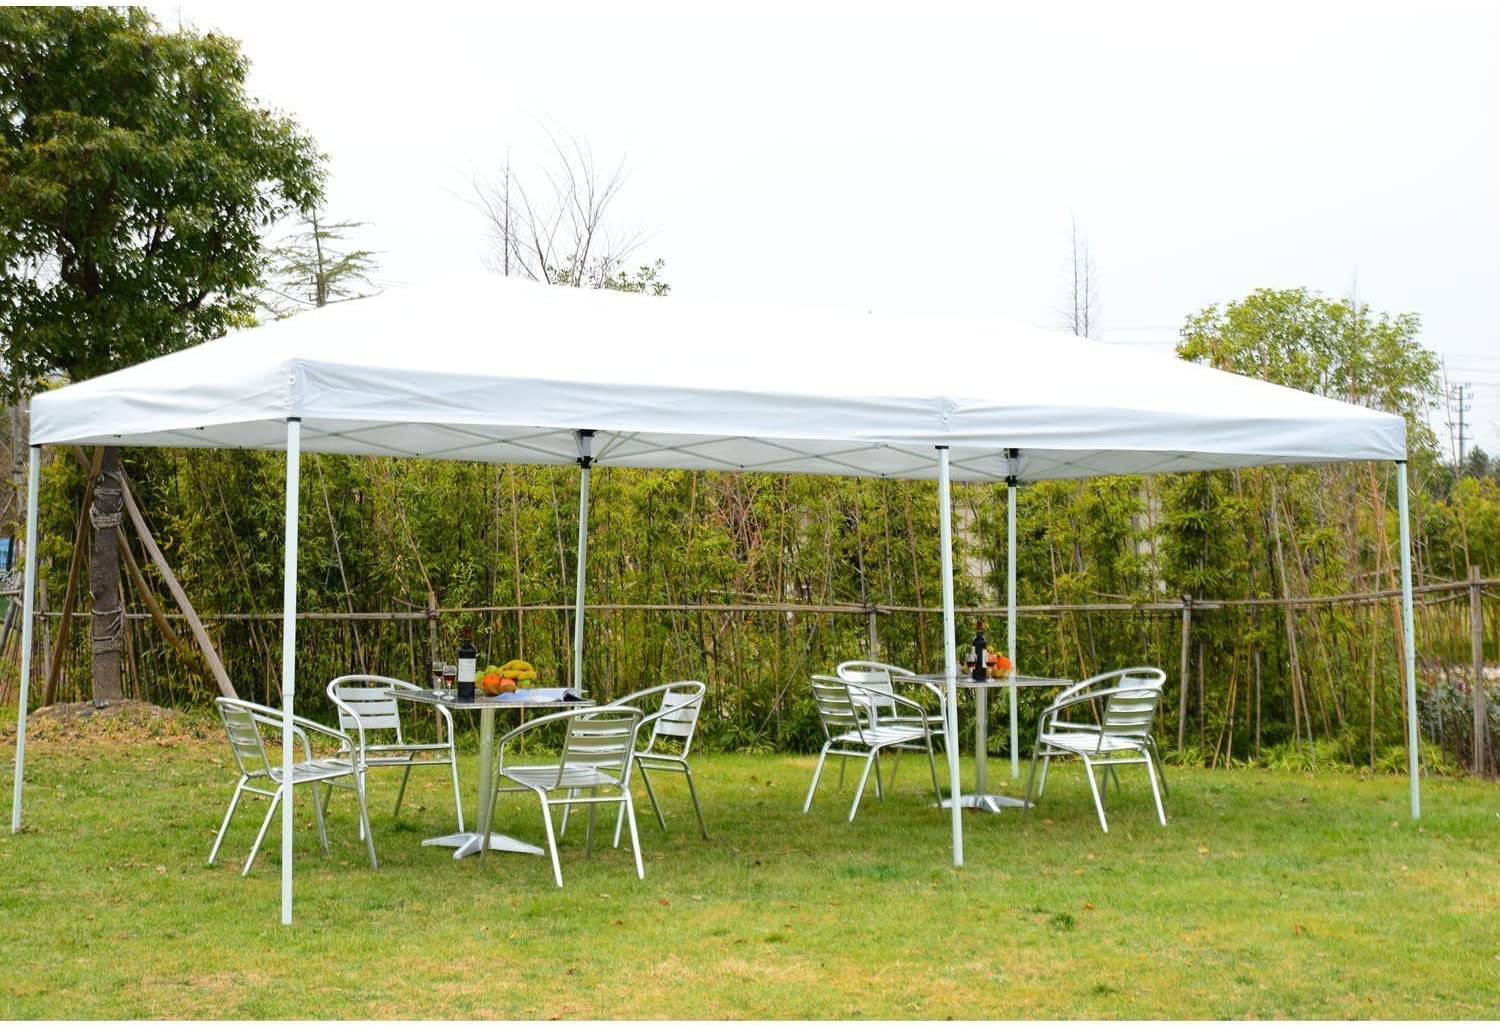 Outsunny Carpa 6x3m Plegable en Acordeon + Cortinas Mosquitera + Bolsa Transporte Gazebo: Amazon.es: Jardín